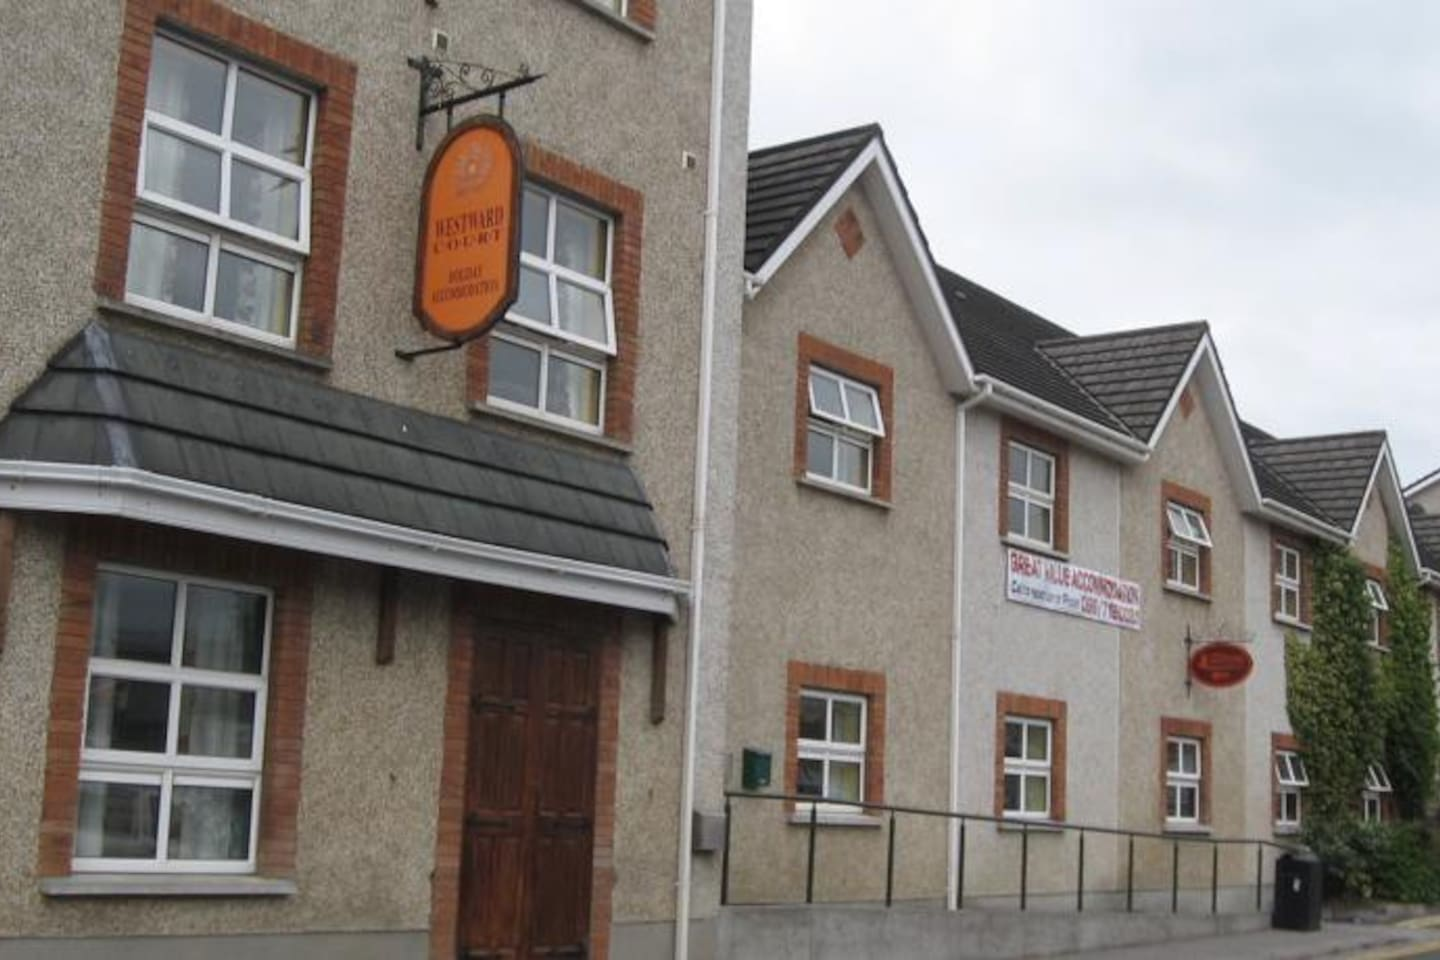 Tralee Holiday Lodge, across the car park from small Tesco, in the center of the town.